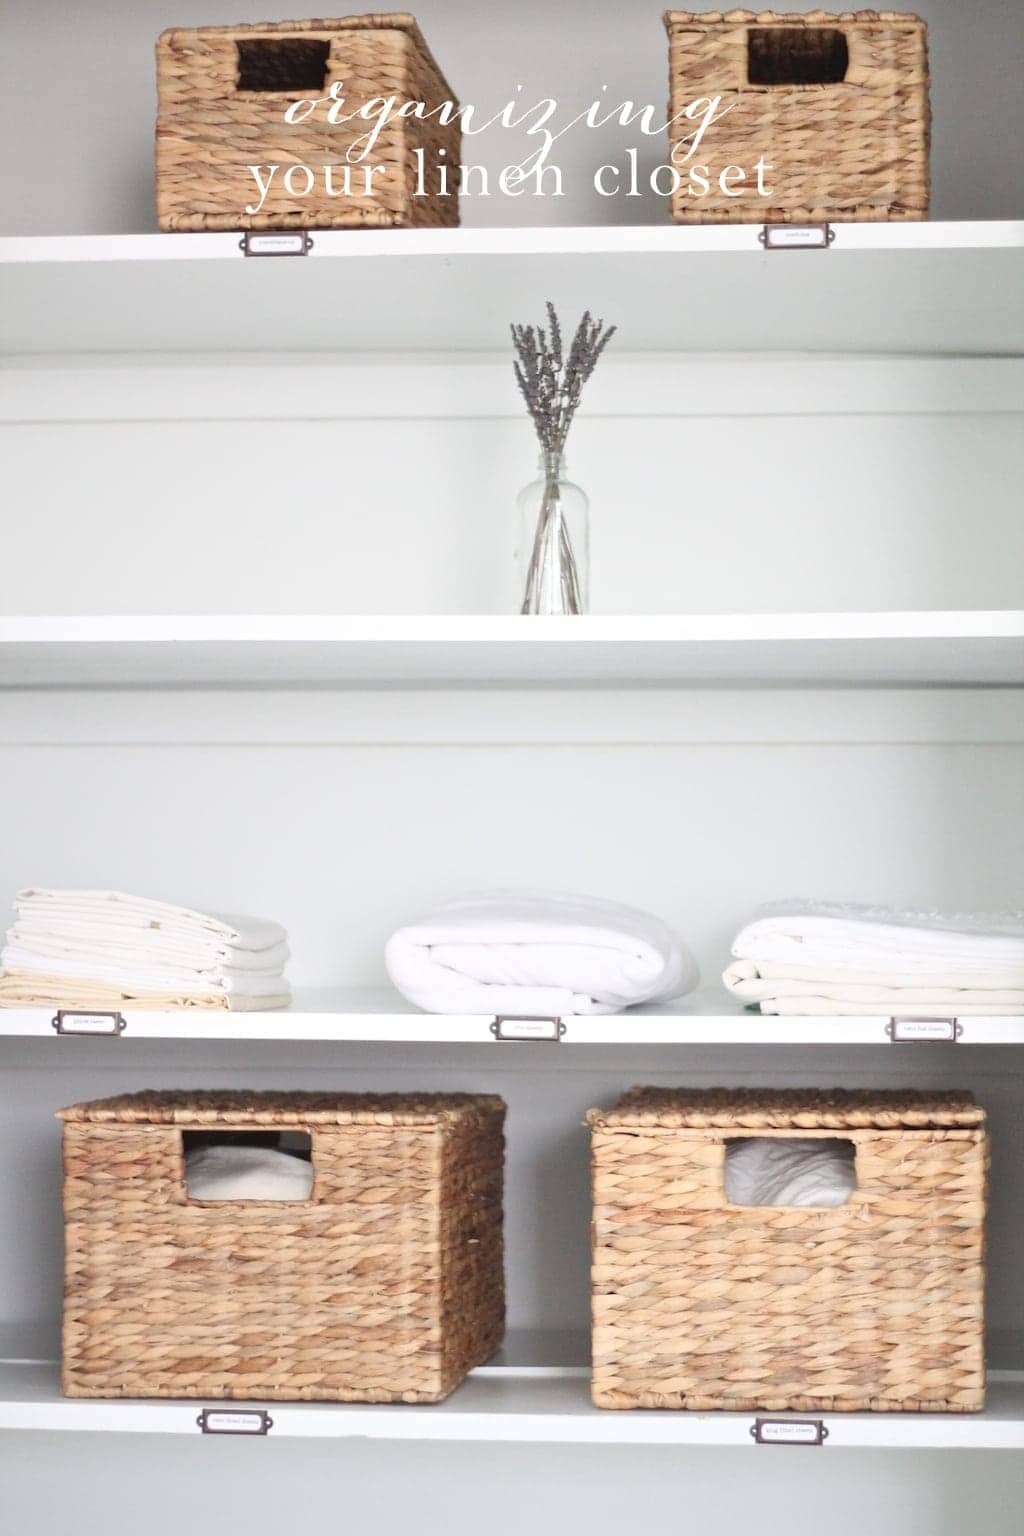 Simple tips & ideas to organize your linen closet, without the stress & mess!